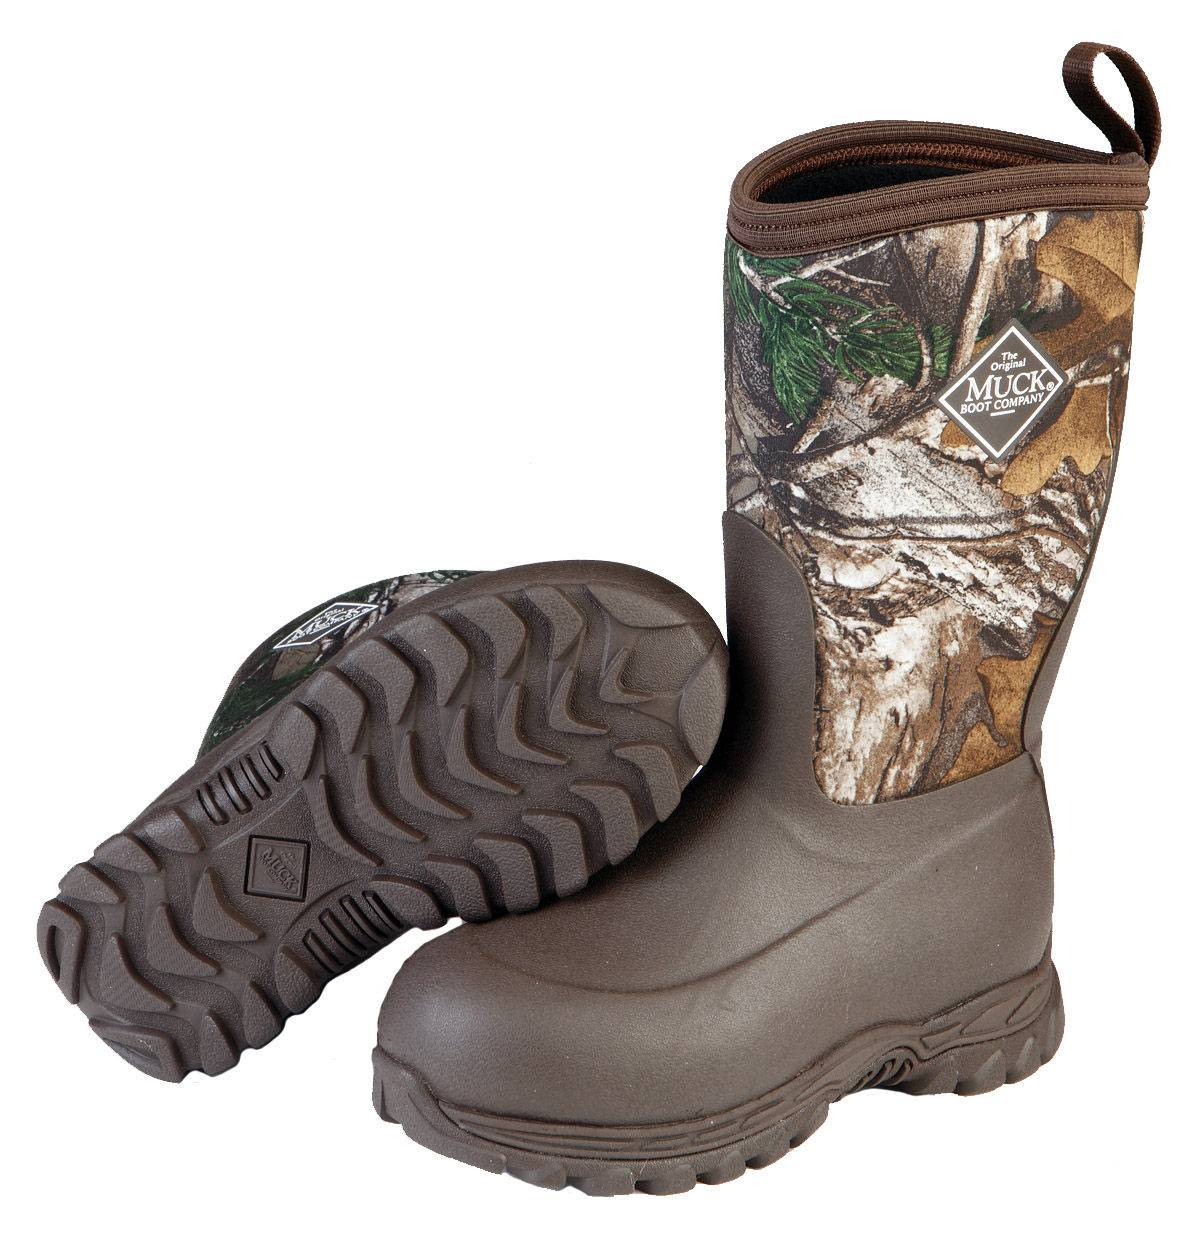 Muck Boots Kids Rugged II - Realtree Xtra